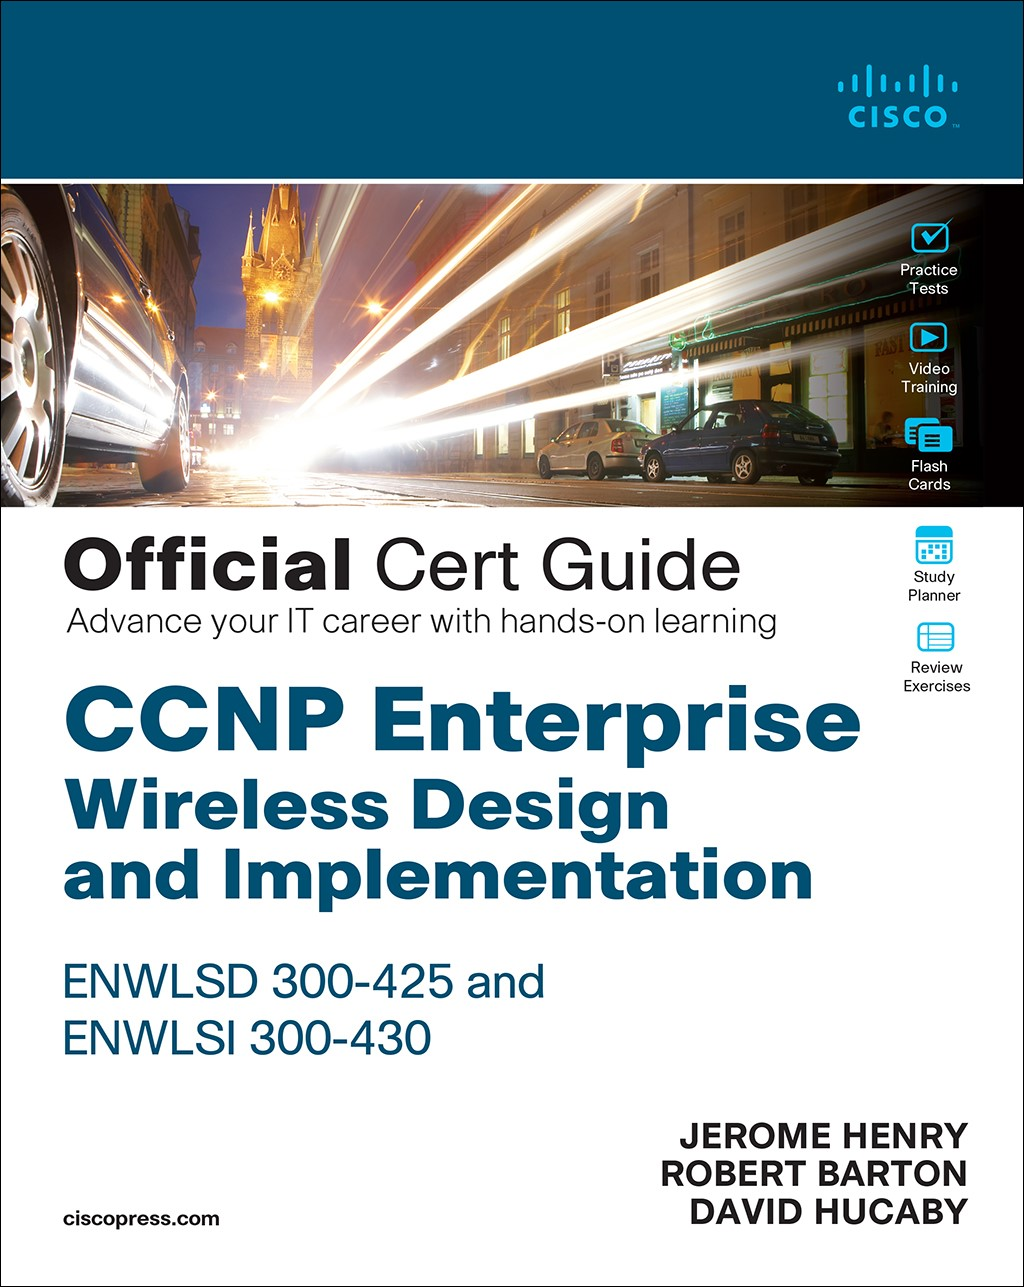 CCNP Enterprise Wireless Design ENWLSD 300-425 and Implementation ENWLSI 300-430 Official Cert Guide: Designing & Implementing Cisco Enterprise Wireless Networks